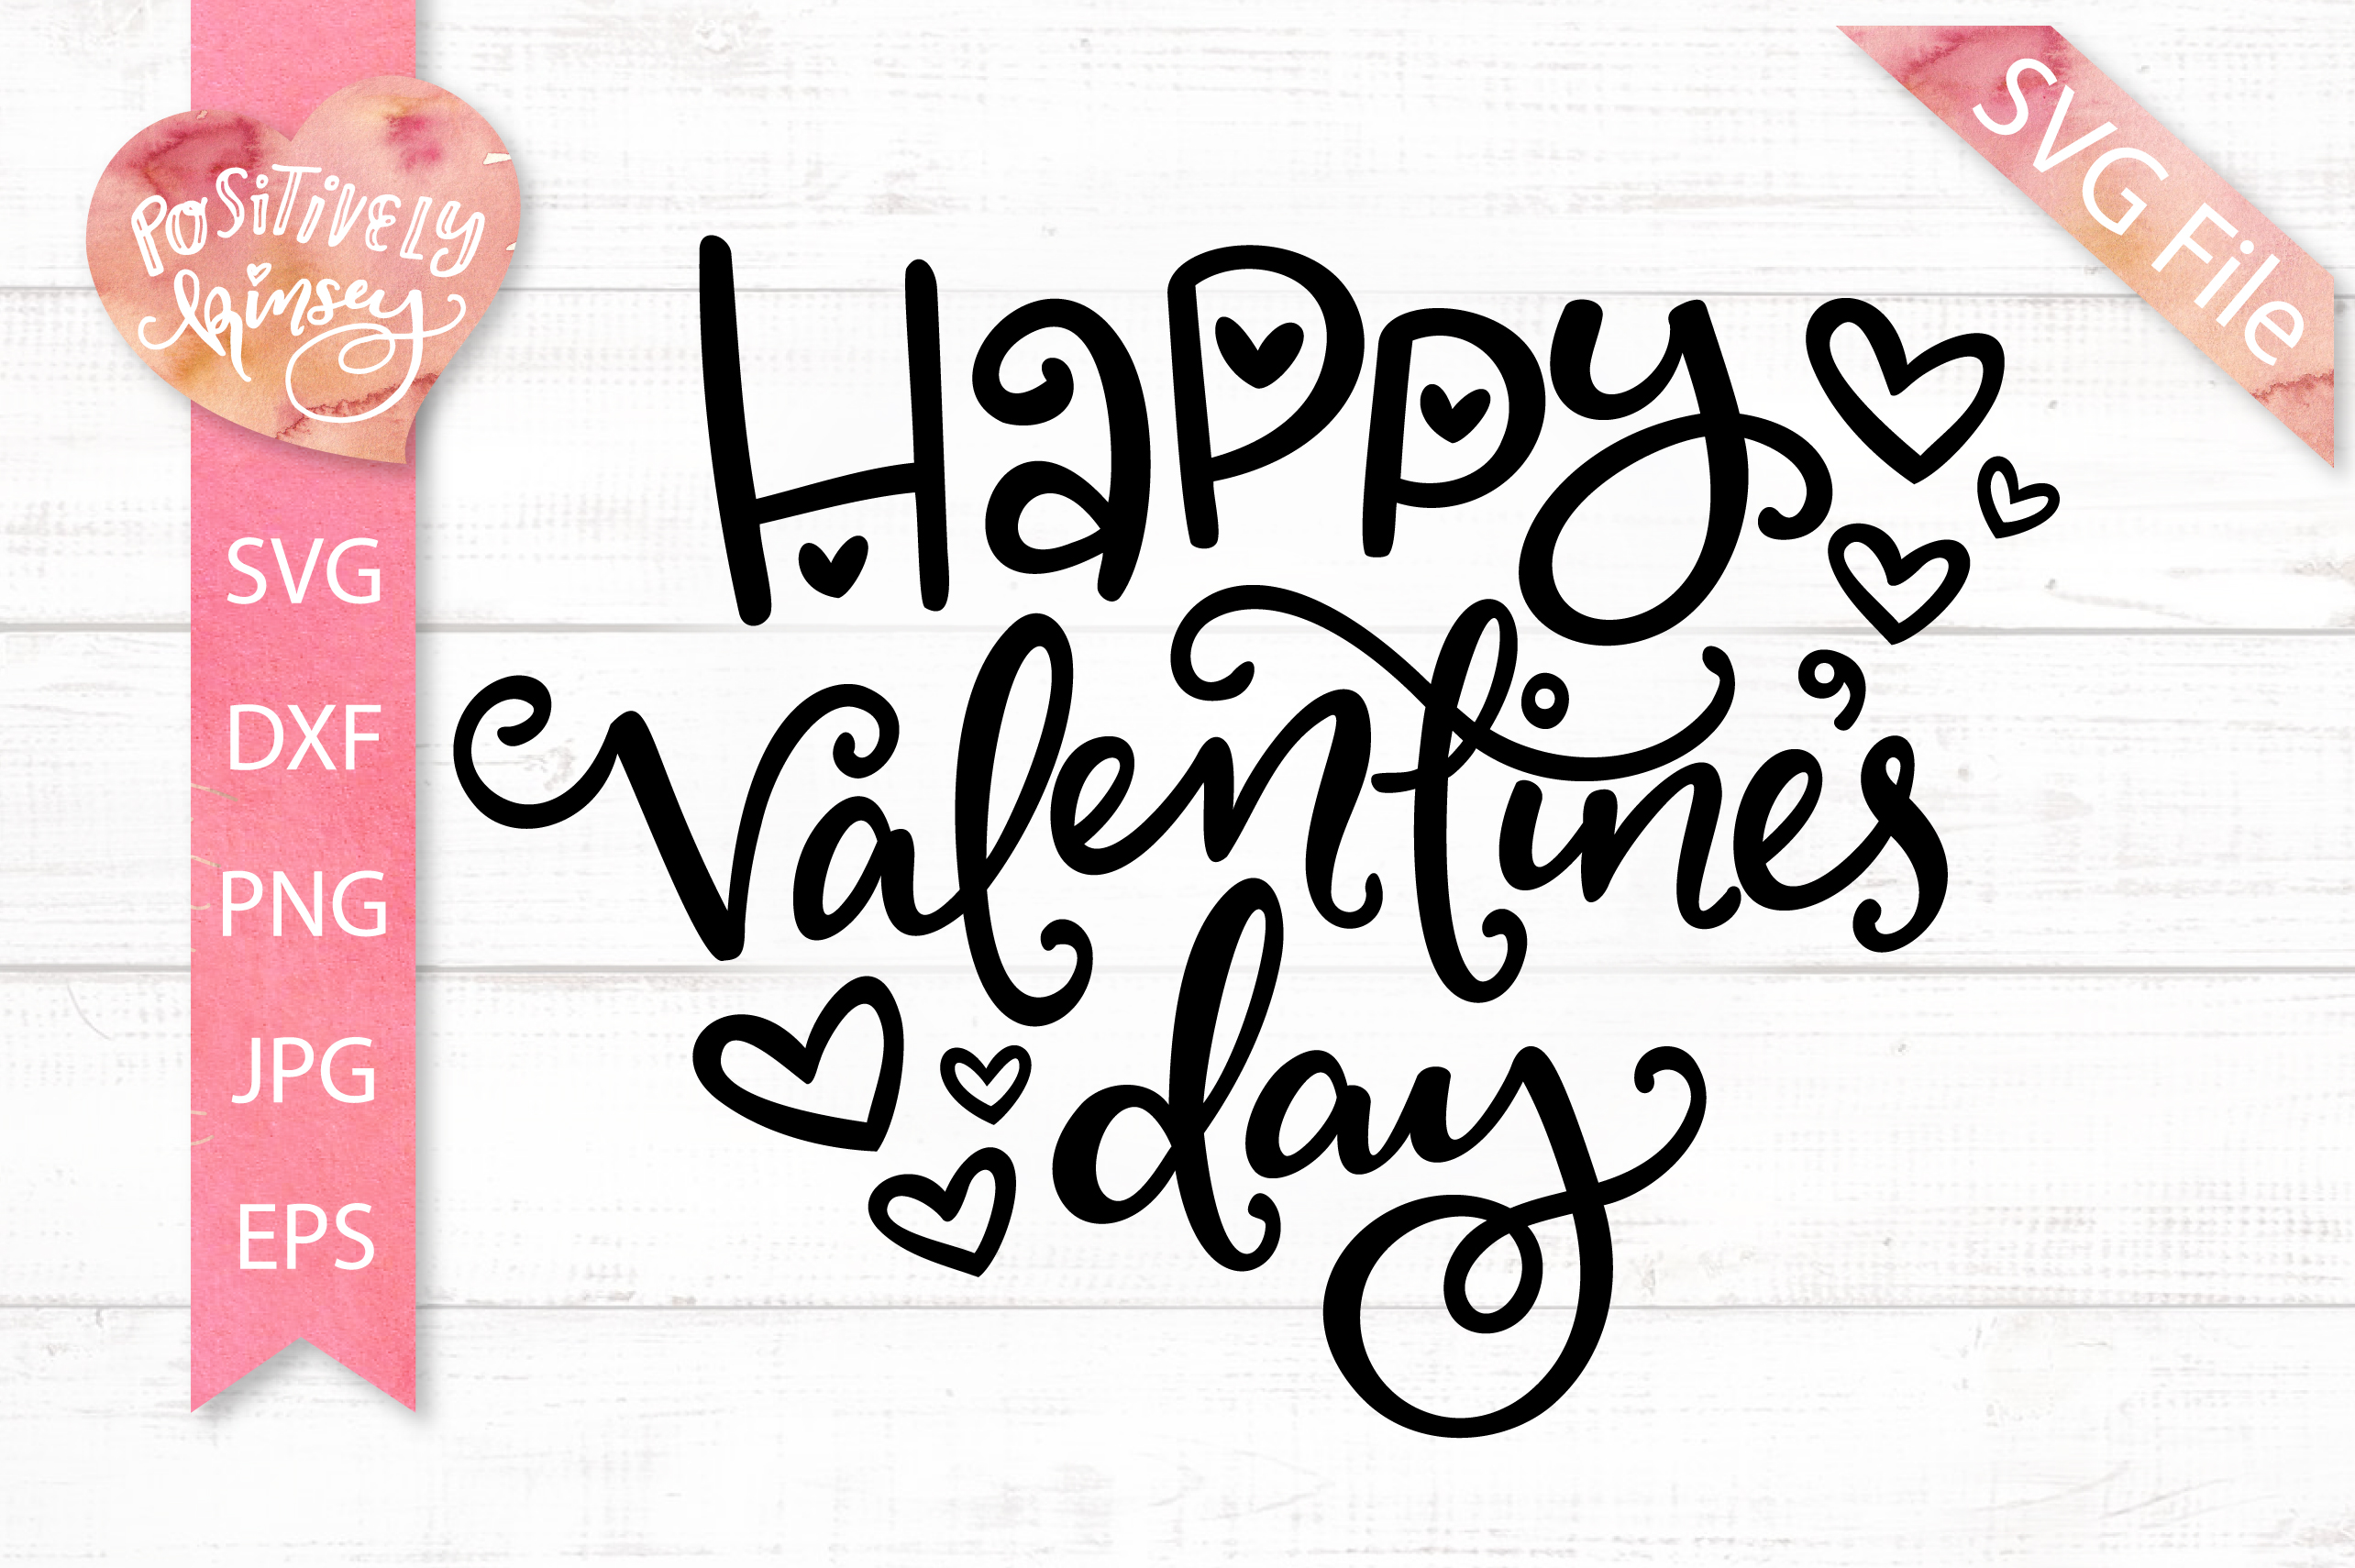 Happy Valentines Day SVG, for Valentine Shirts & Card Making example image 2